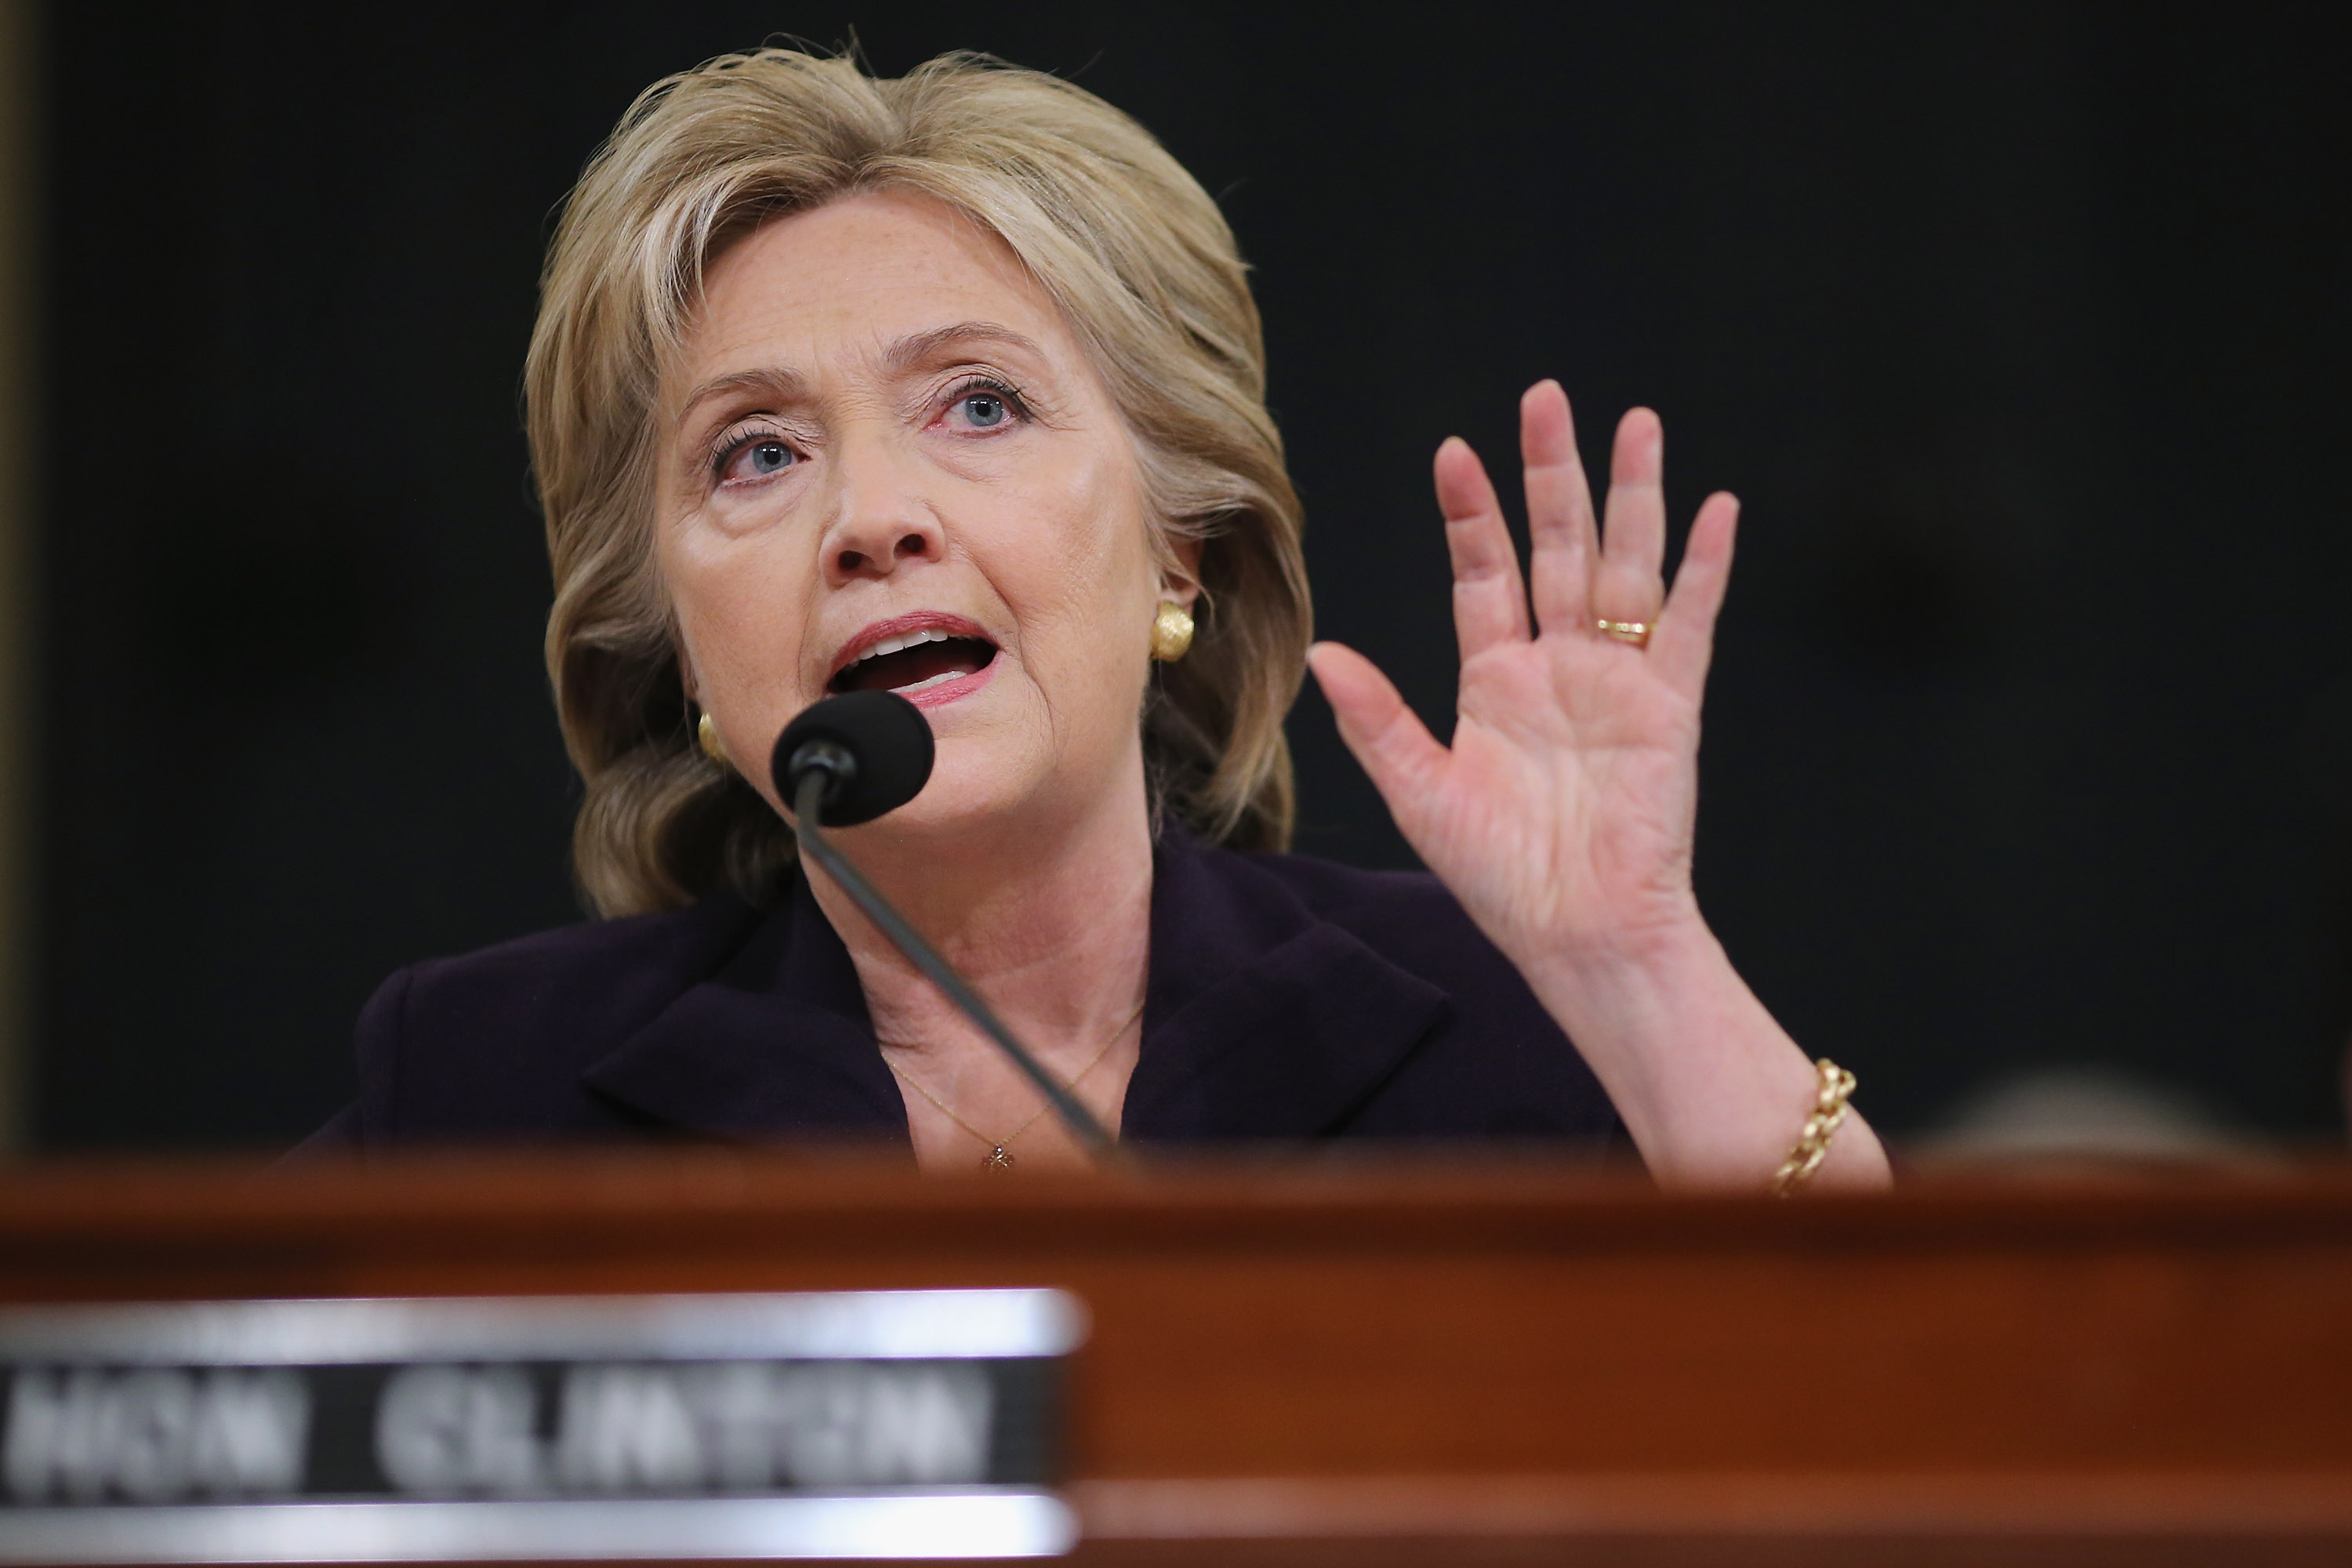 Hillary Clinton testifies before the House Select Committee on Benghazi on Oct. 22, 2015 on Capitol Hill in Washington, DC.